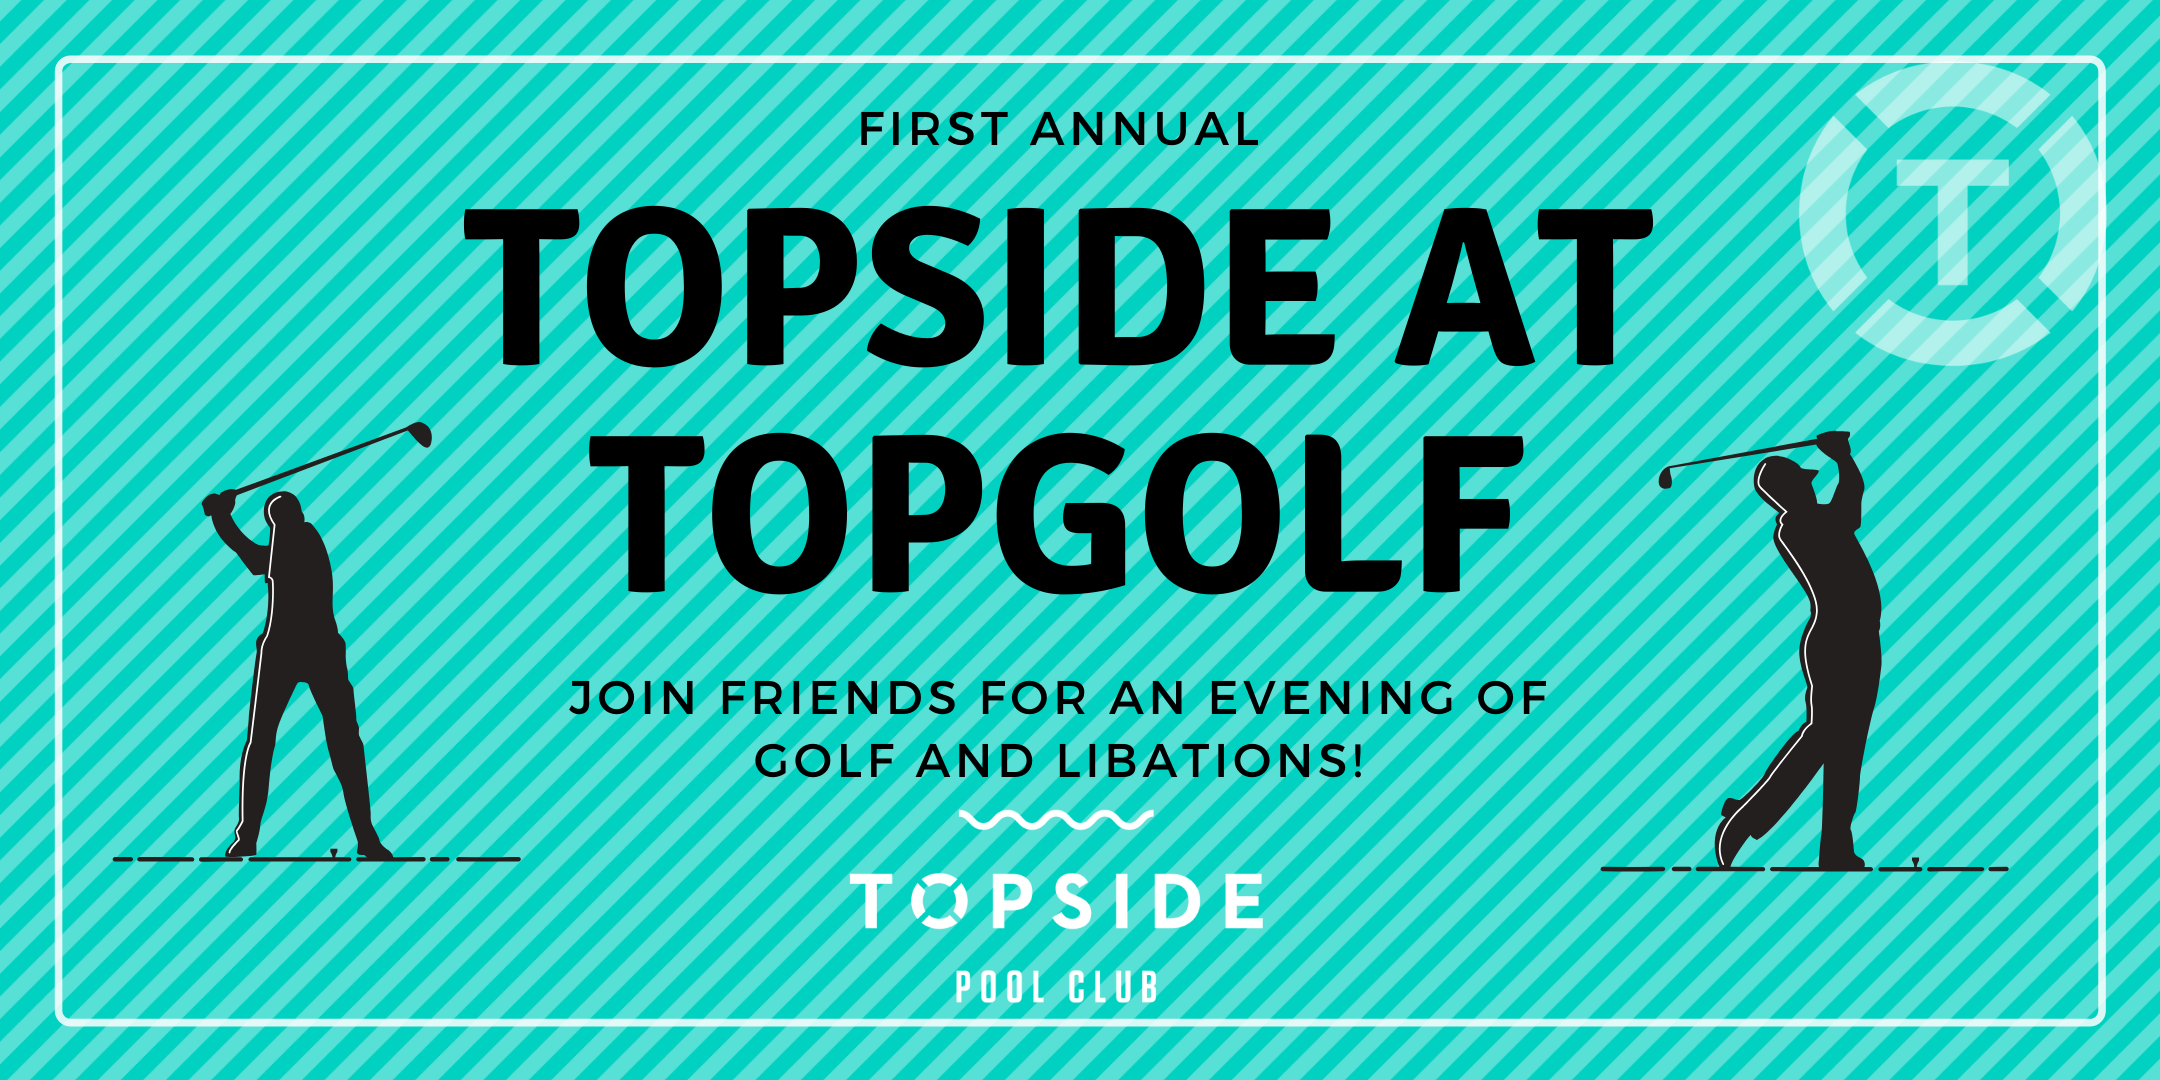 Topside at Topgolf